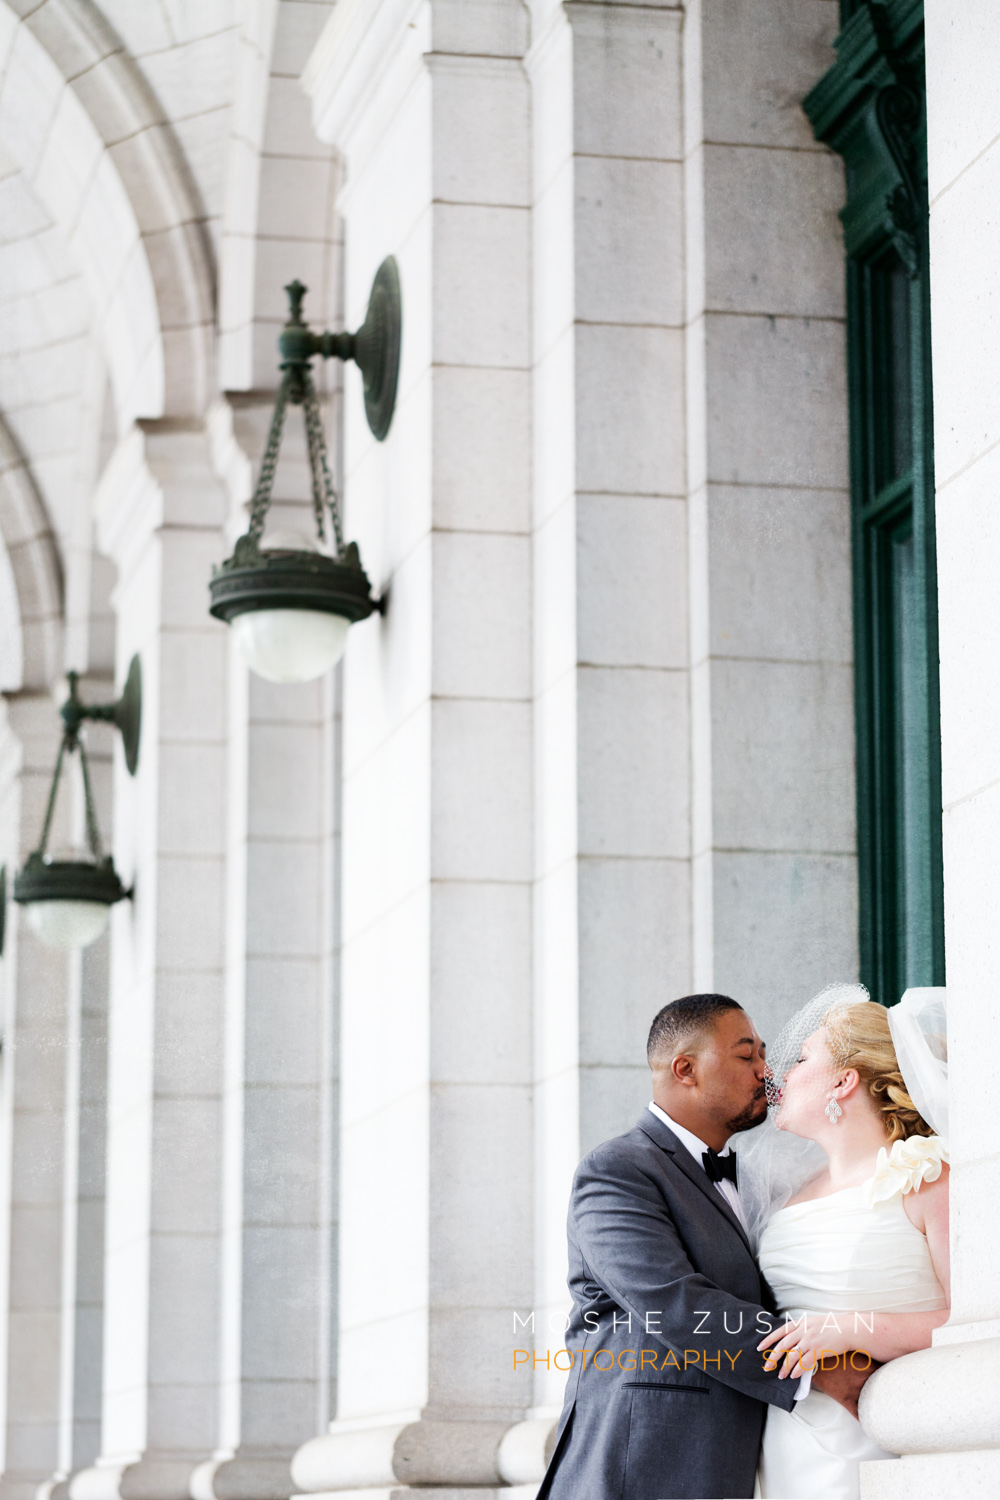 Washington_DC_Wedding_Photographer_Moshe_Zusman_Lincoln_Restaurant-33.jpg